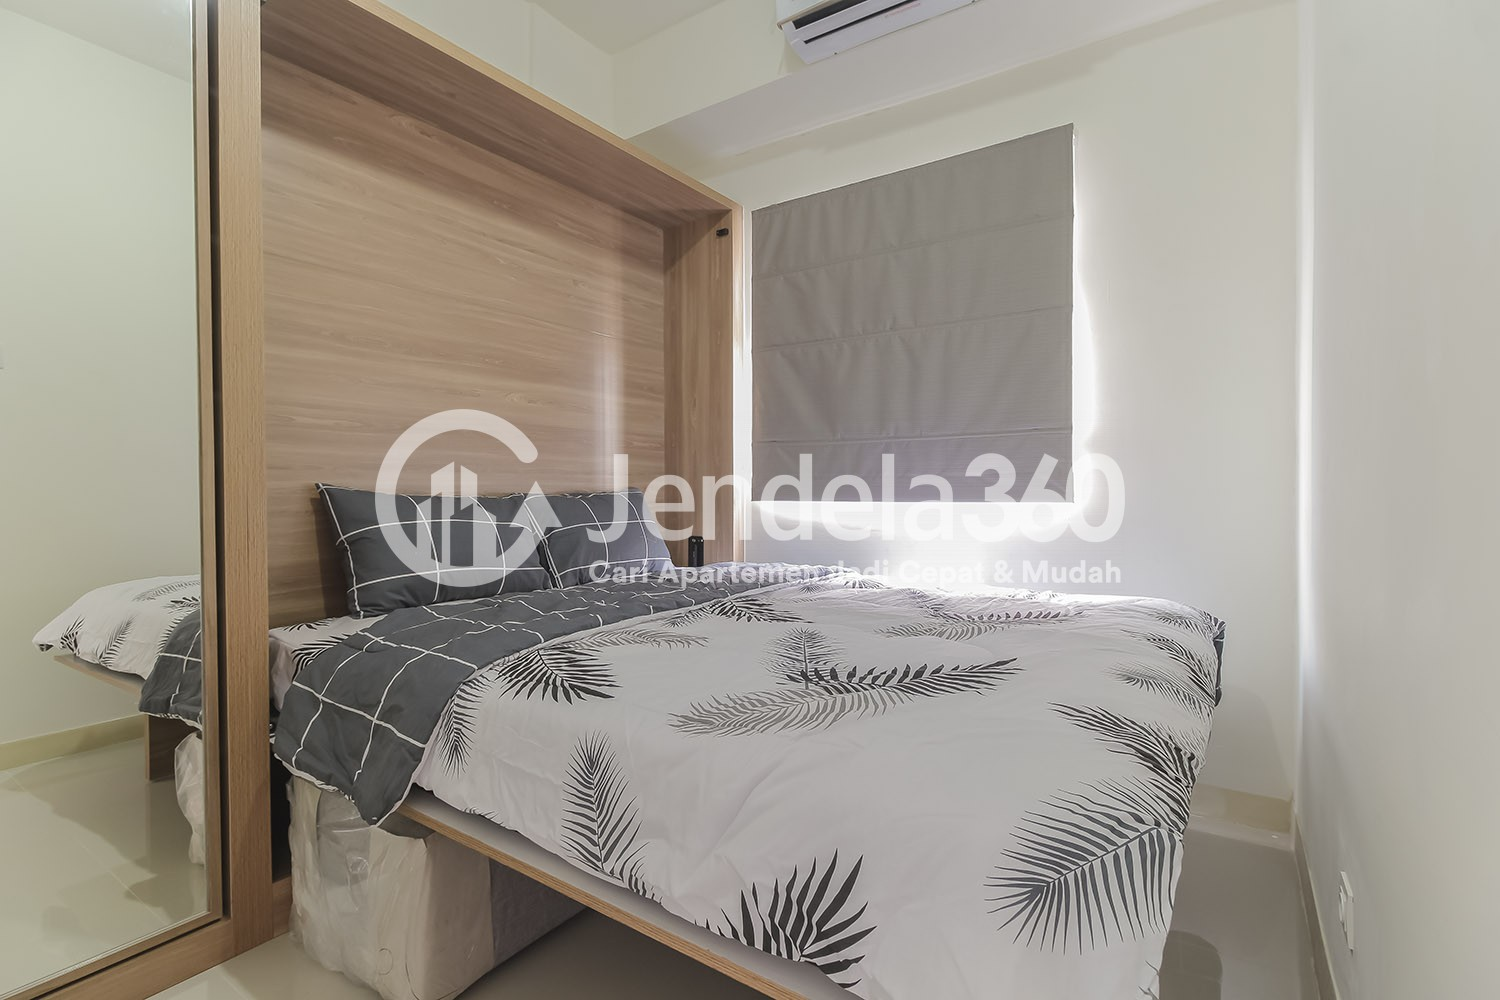 Bedroom 1 Apartemen Green Pramuka City Apartment